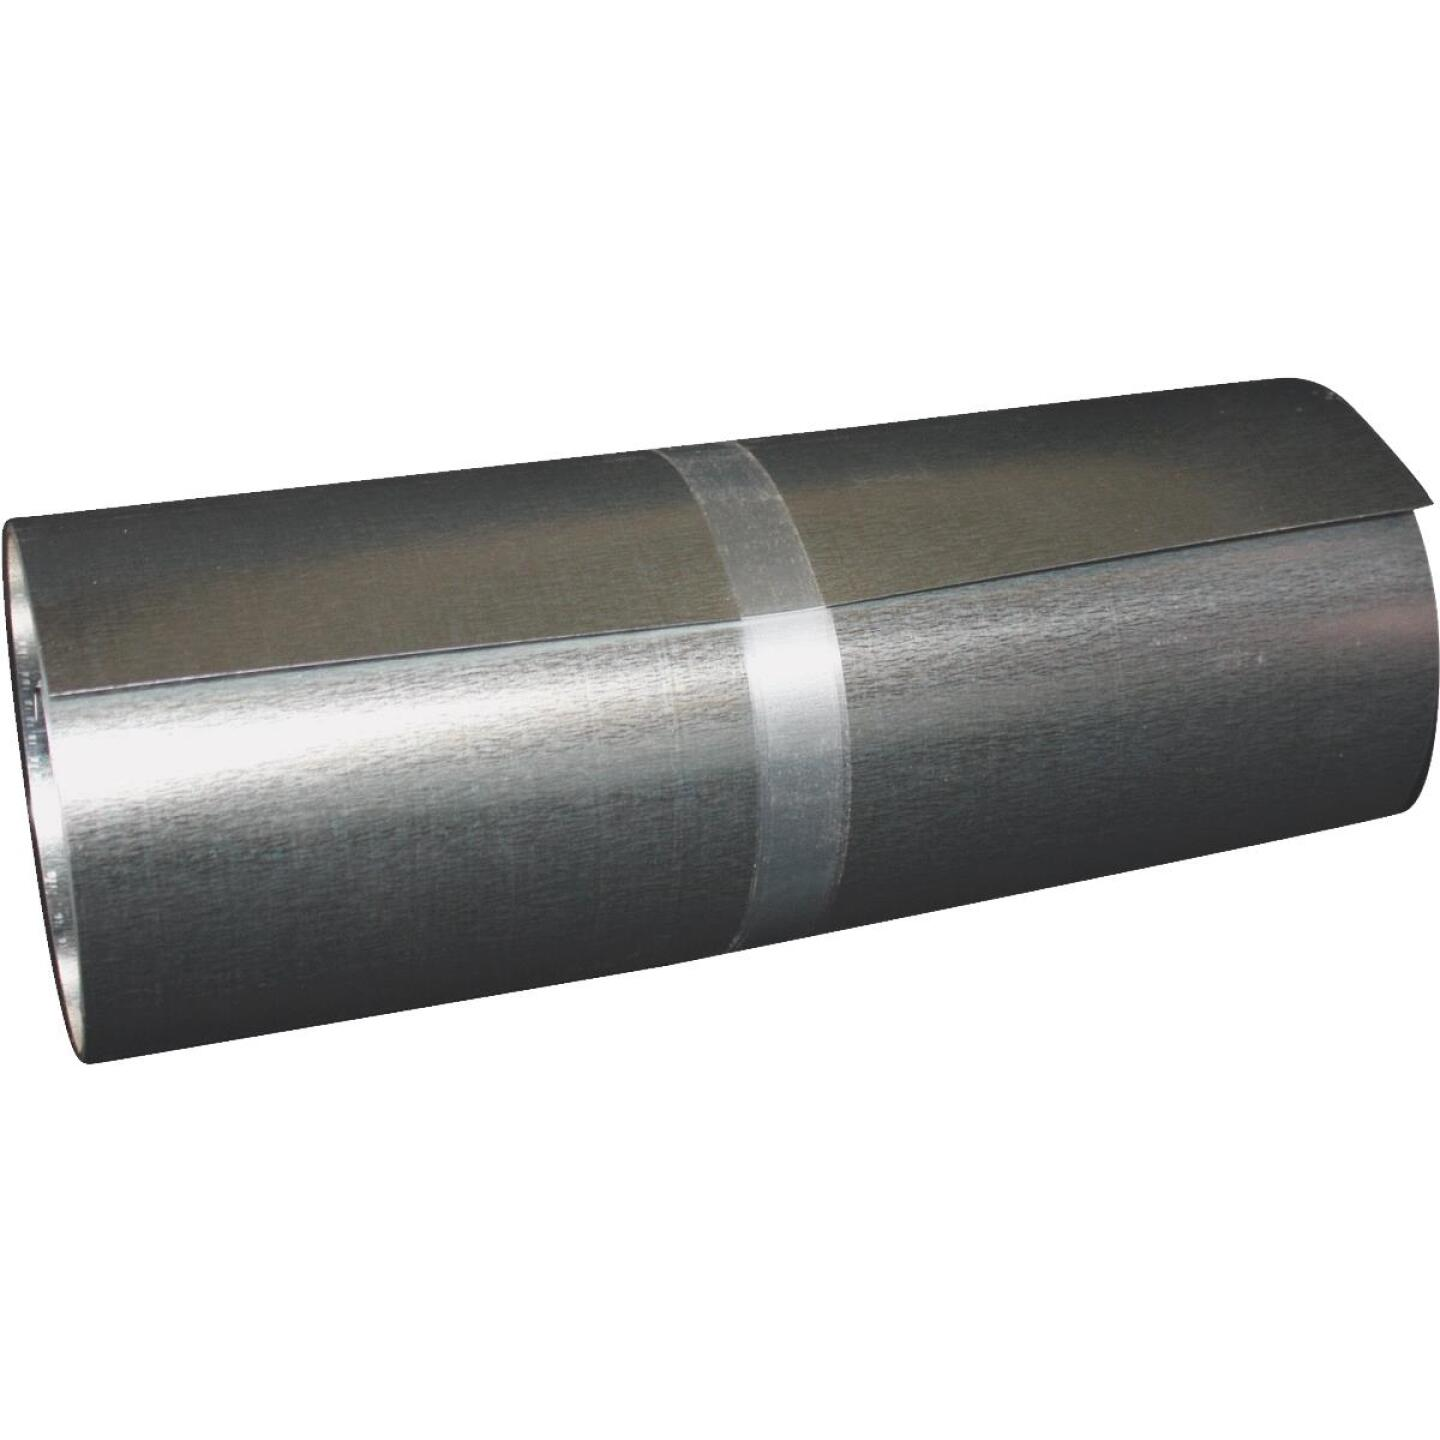 Klauer 4 In. x 10 Ft. Mill Galvanized Roll Valley Flashing Image 1